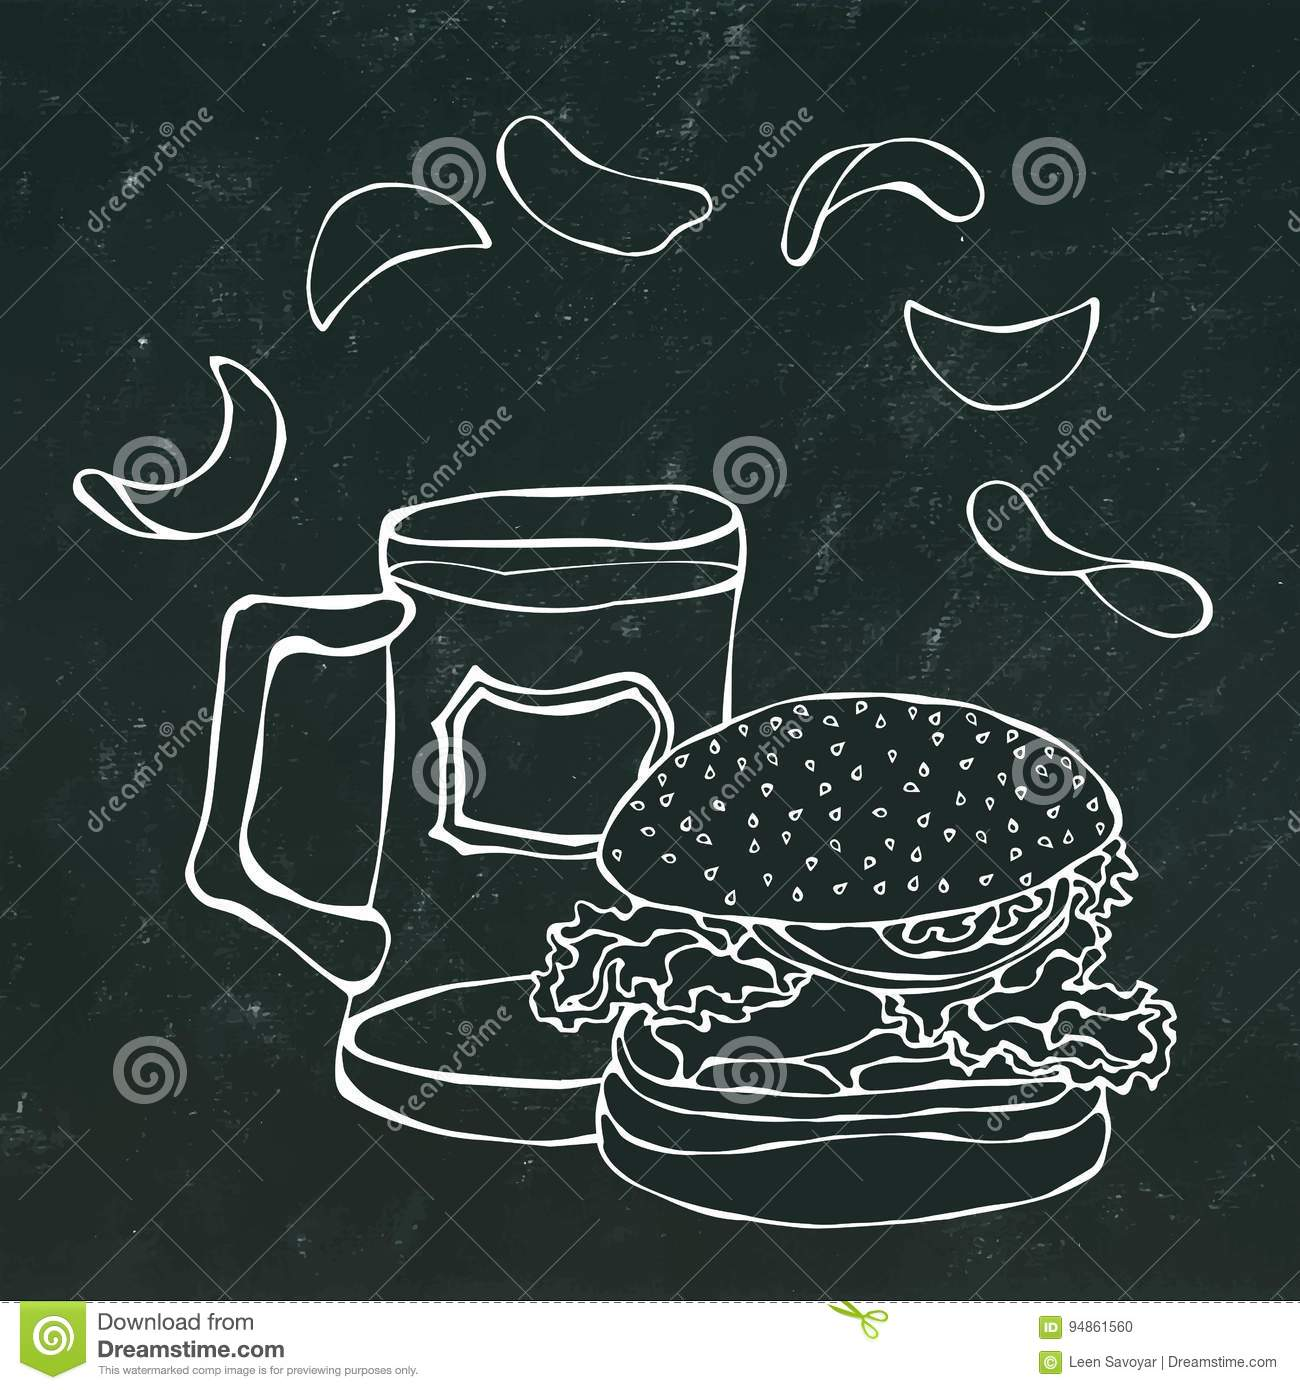 Big Hamburger or Cheeseburger, Beer Mug or Pint and Potato Chips. Burger Logo. Isolated On a White Background. Realistic